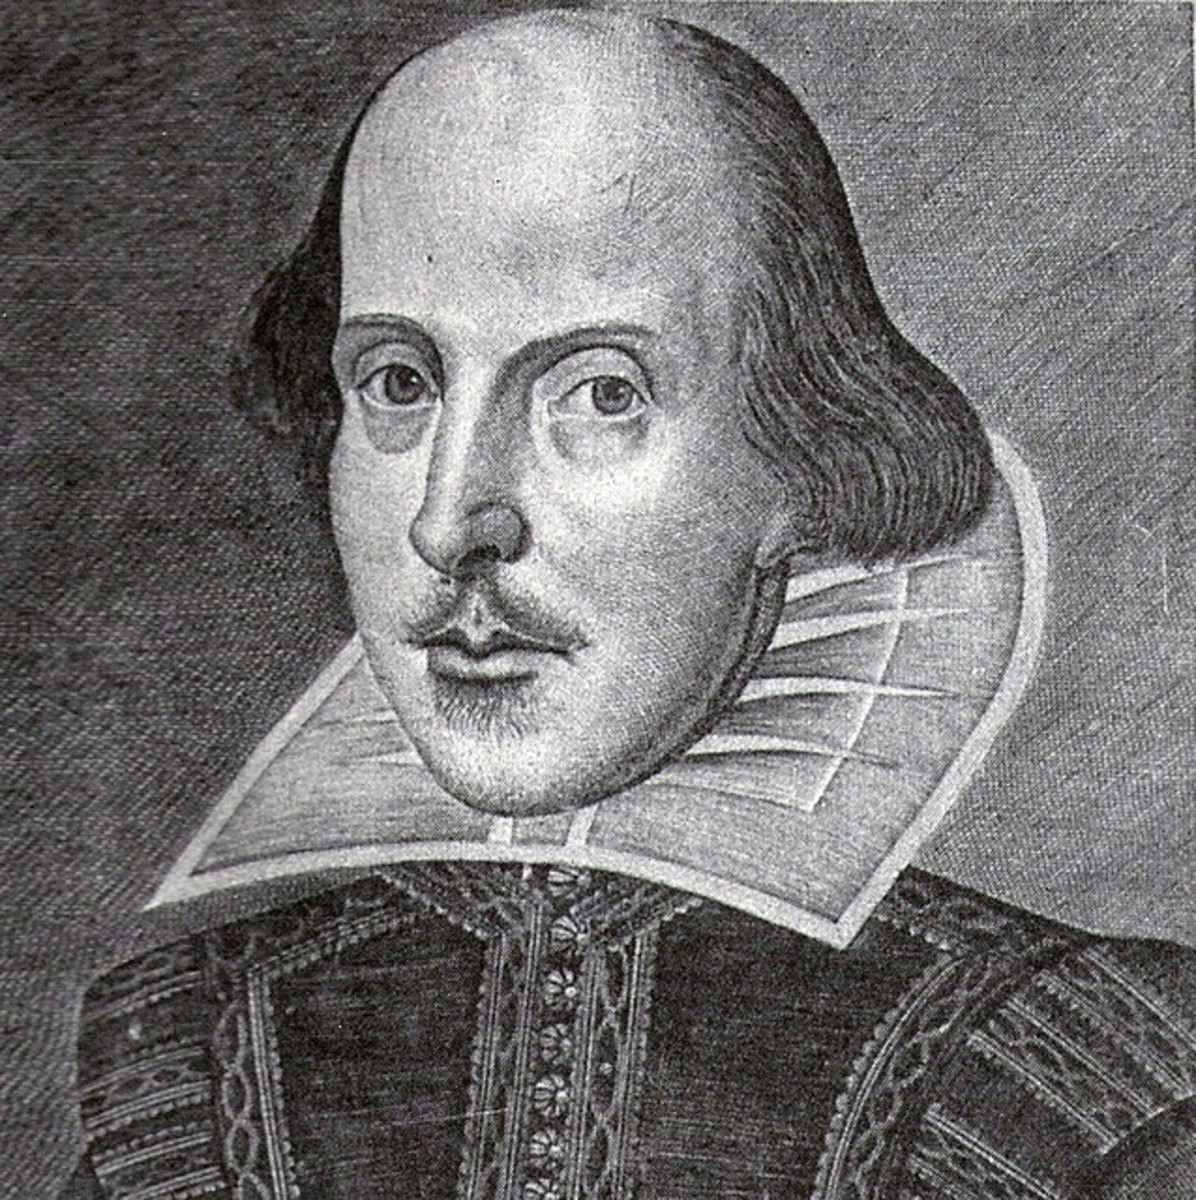 50 Shakespeare Insults: The Best British Insults Ever